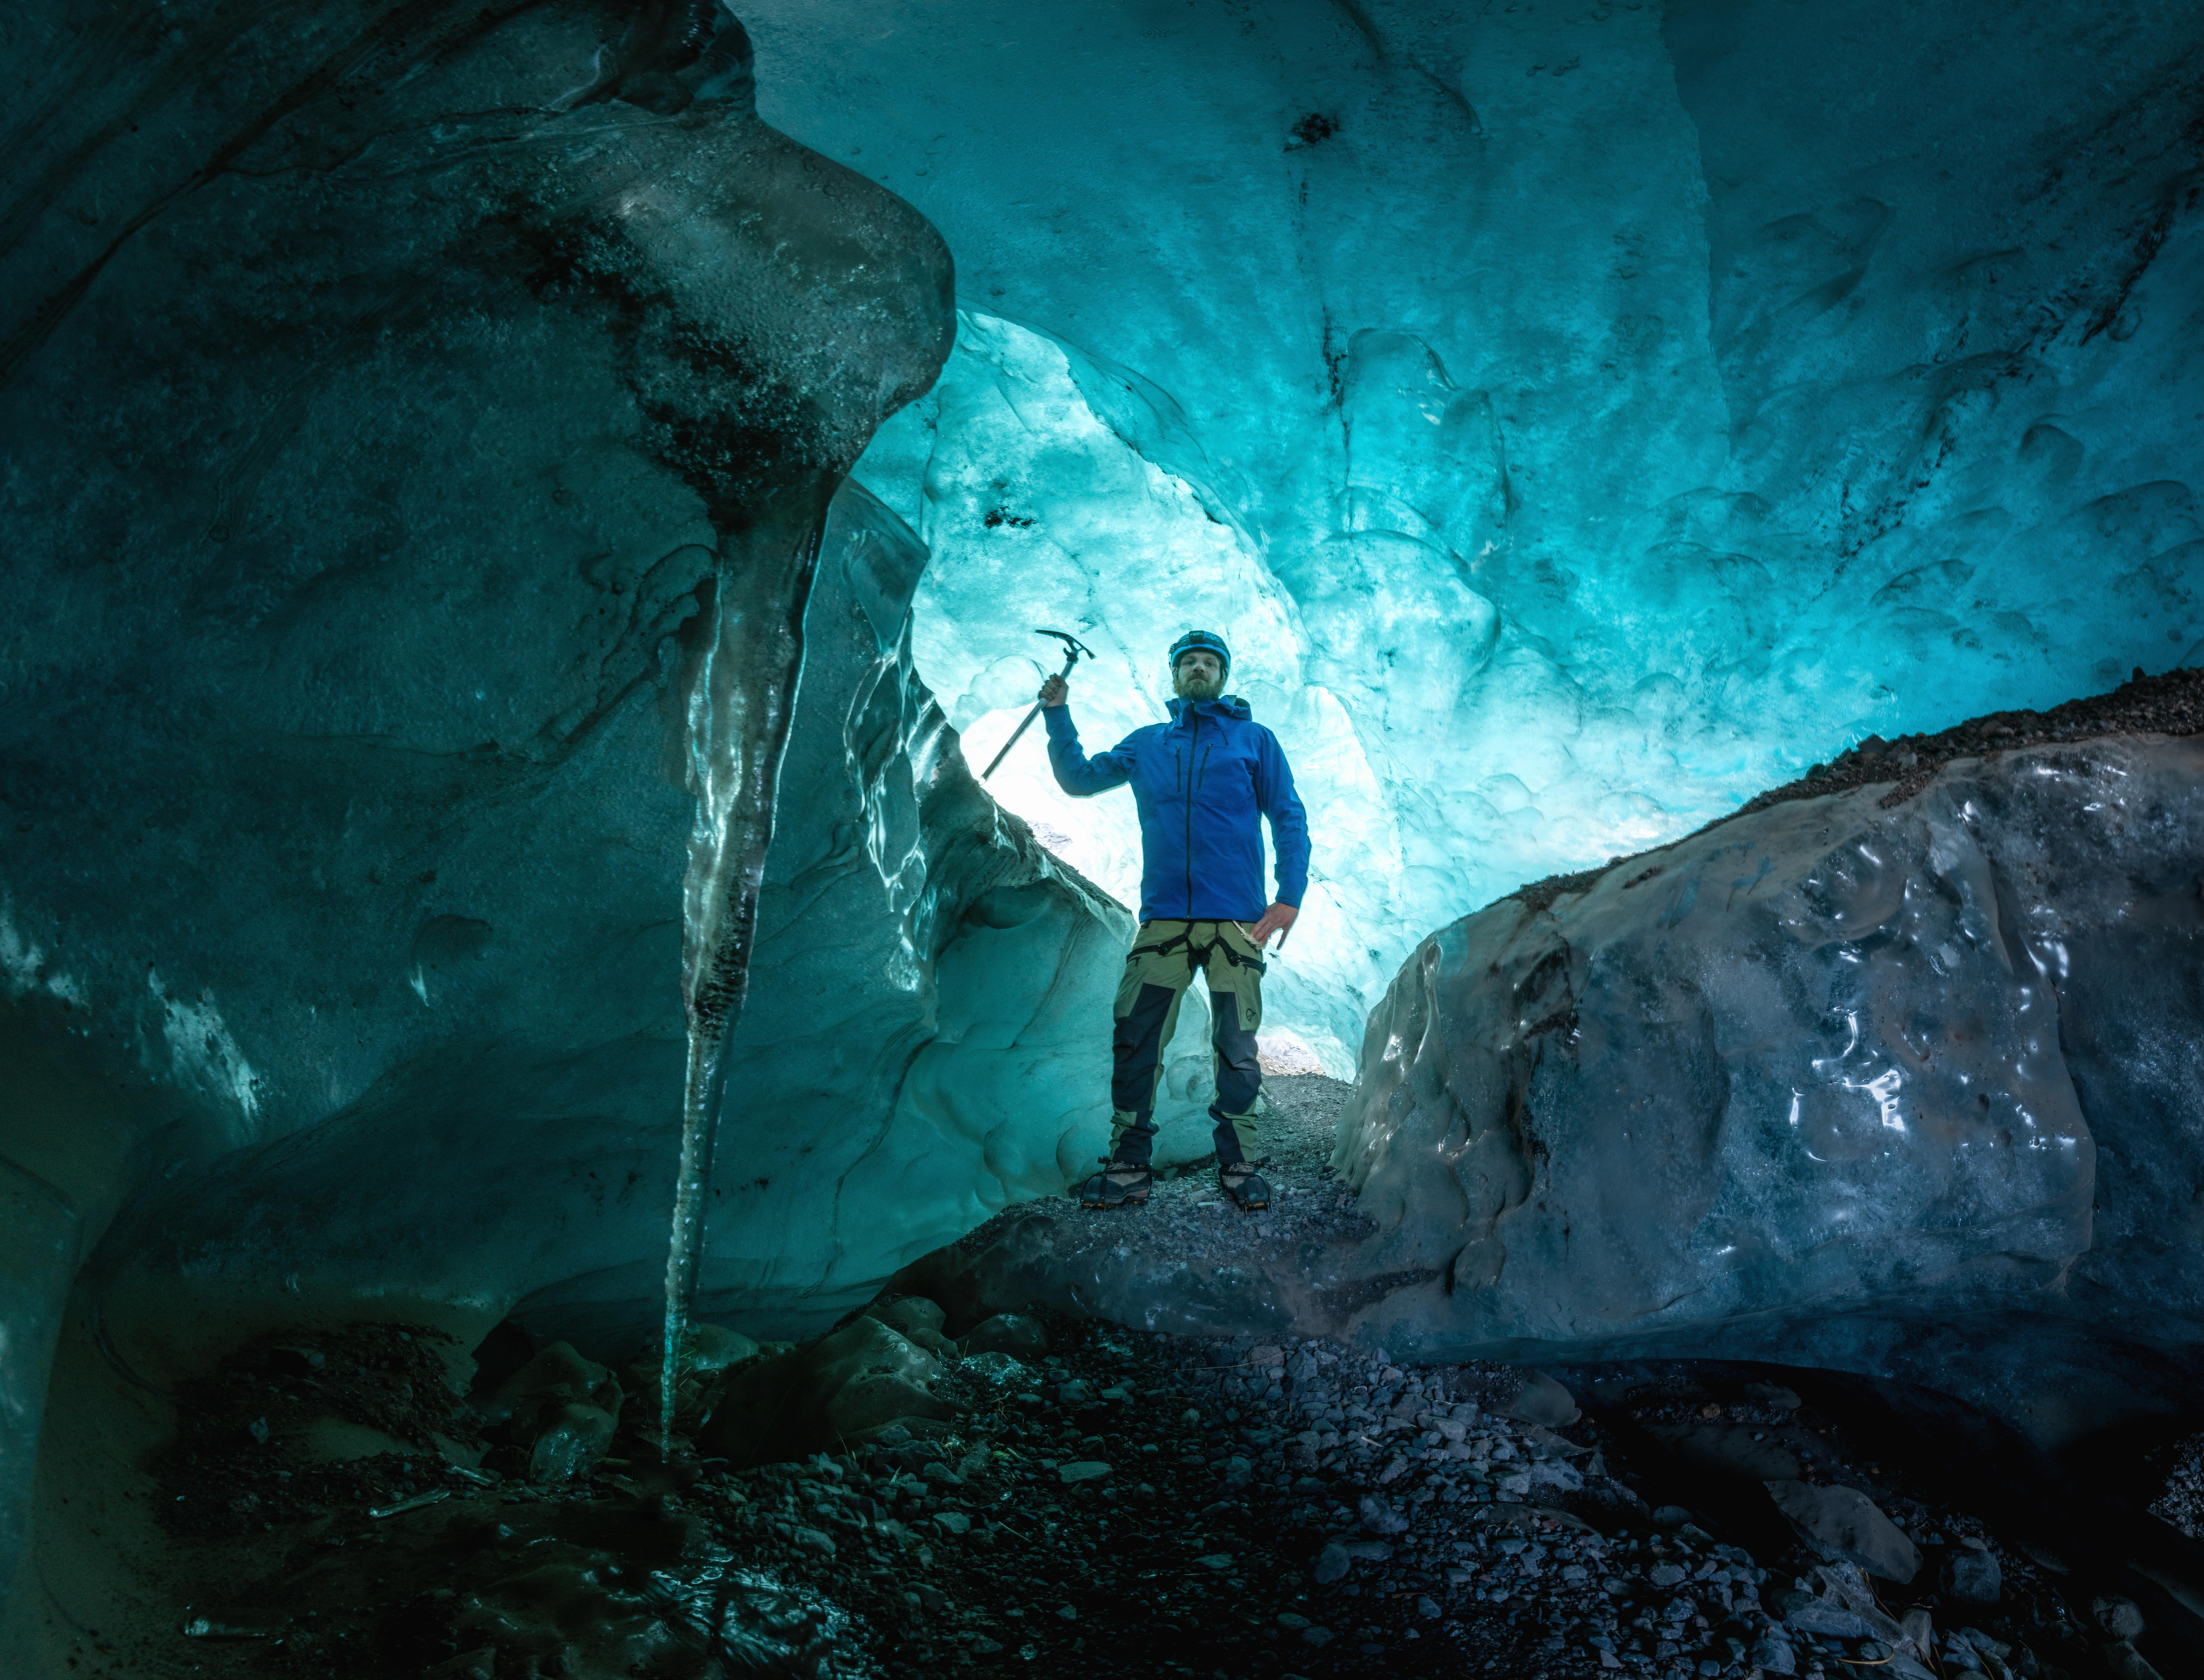 2 Day Northern Lights Hunt & Blue Ice Caving of the South Coast with Glacier Hiking & Jokulsarlon